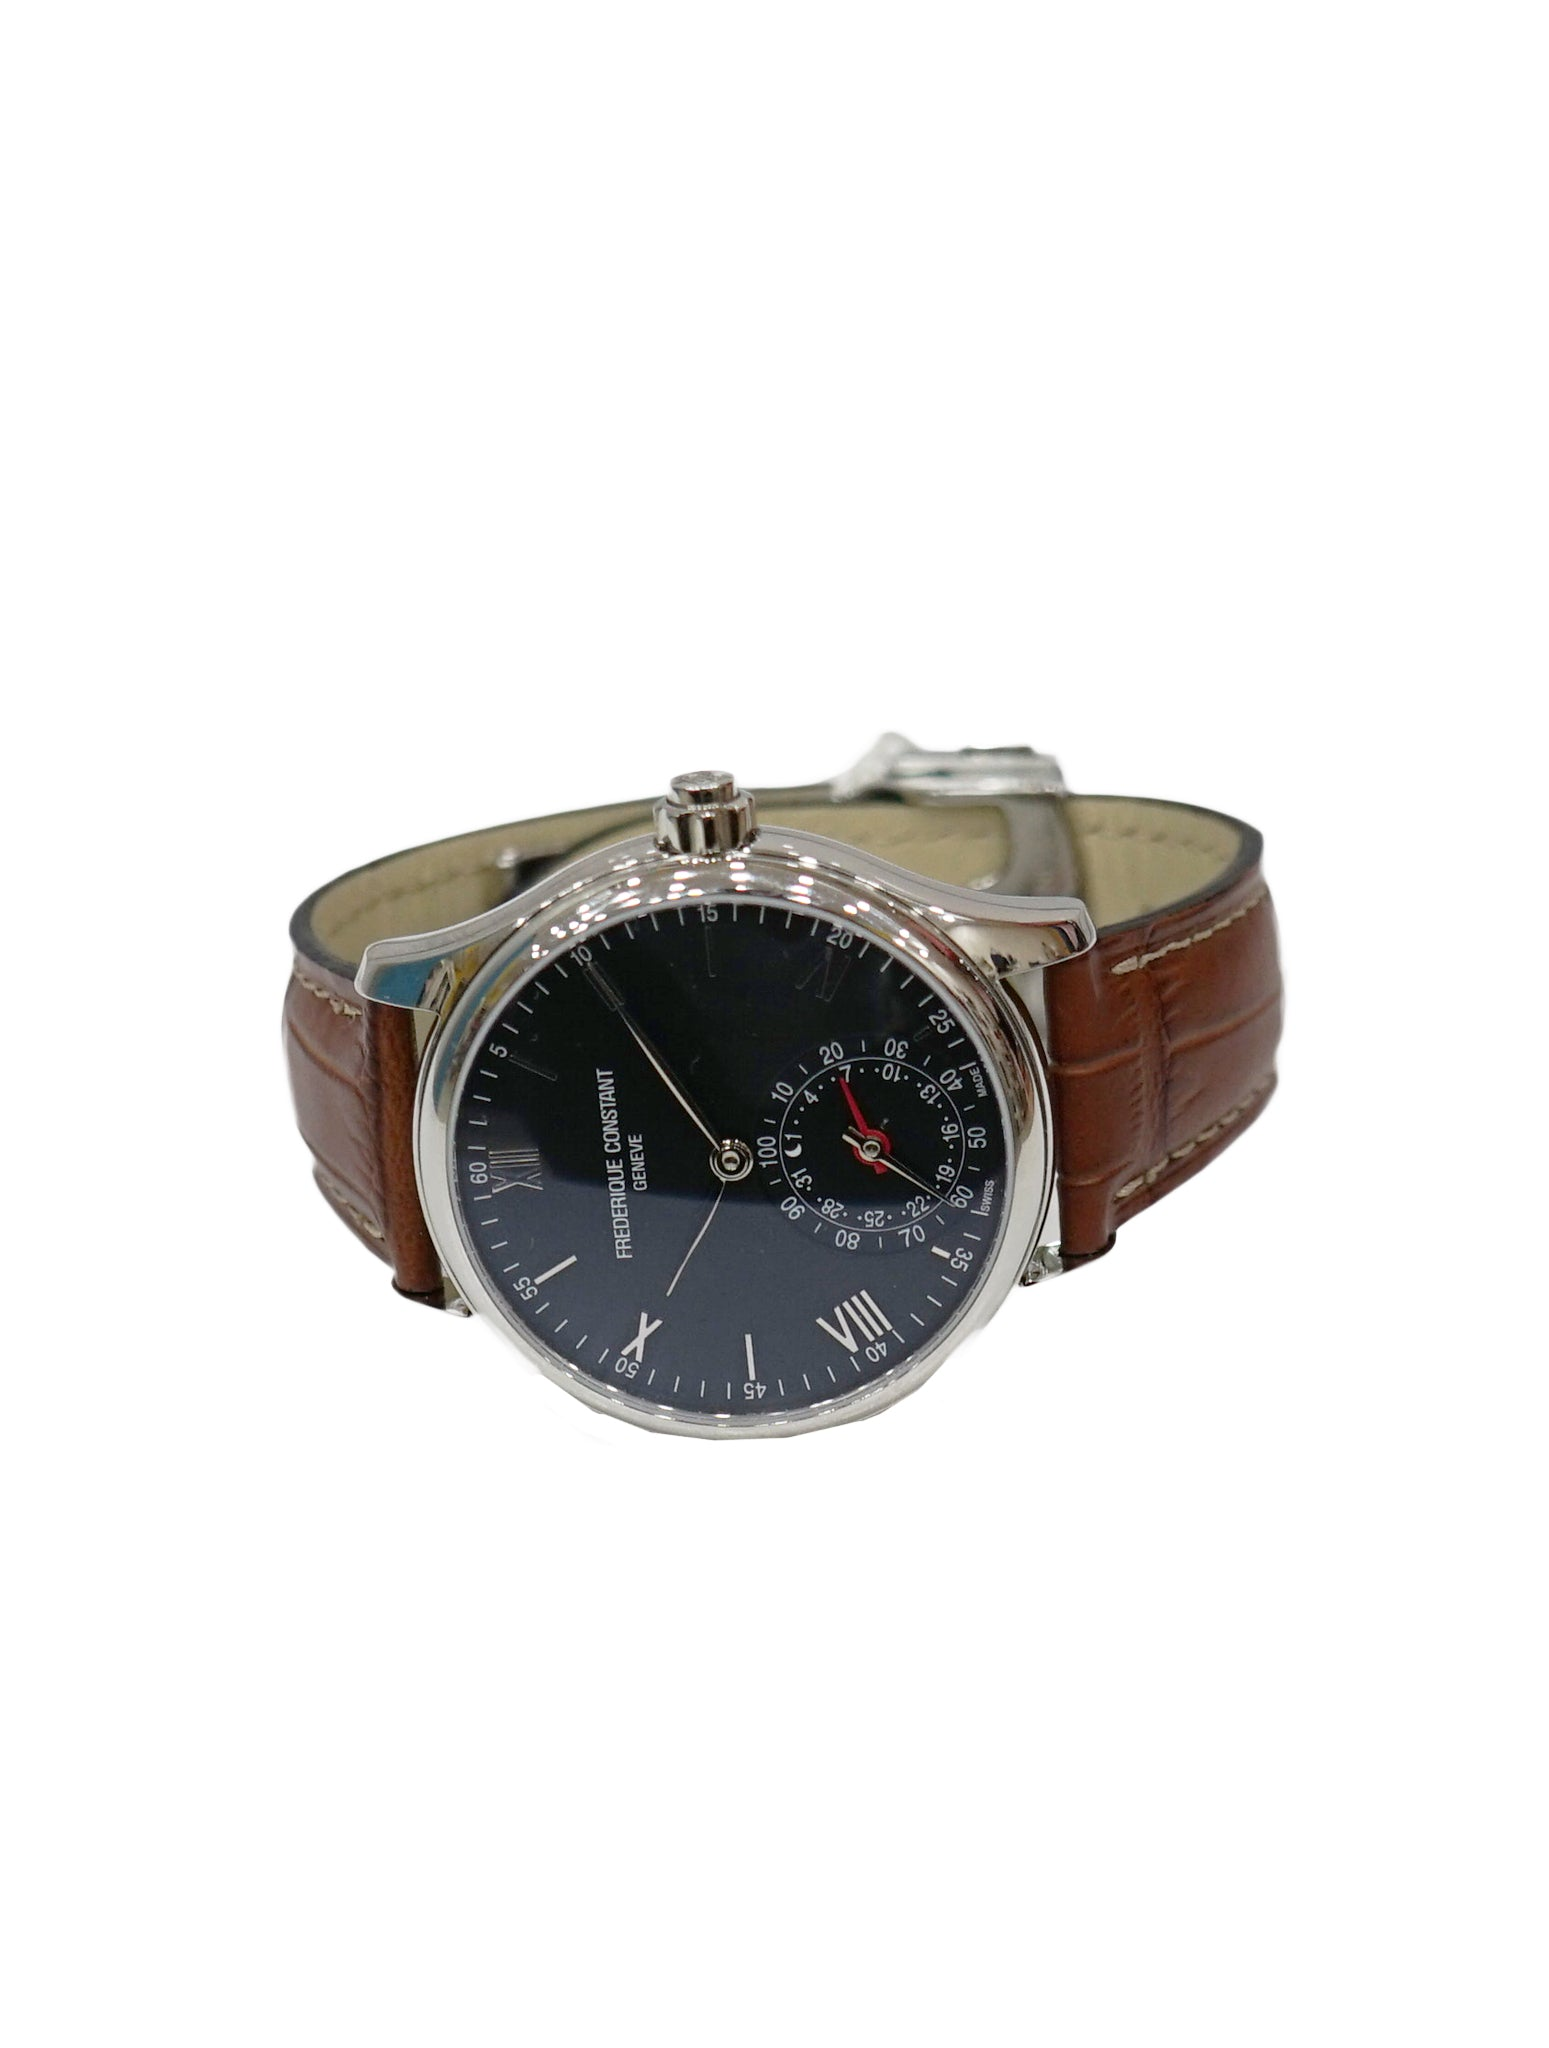 BROWN LEATHER HOROLOGICAL SMARTWATCH